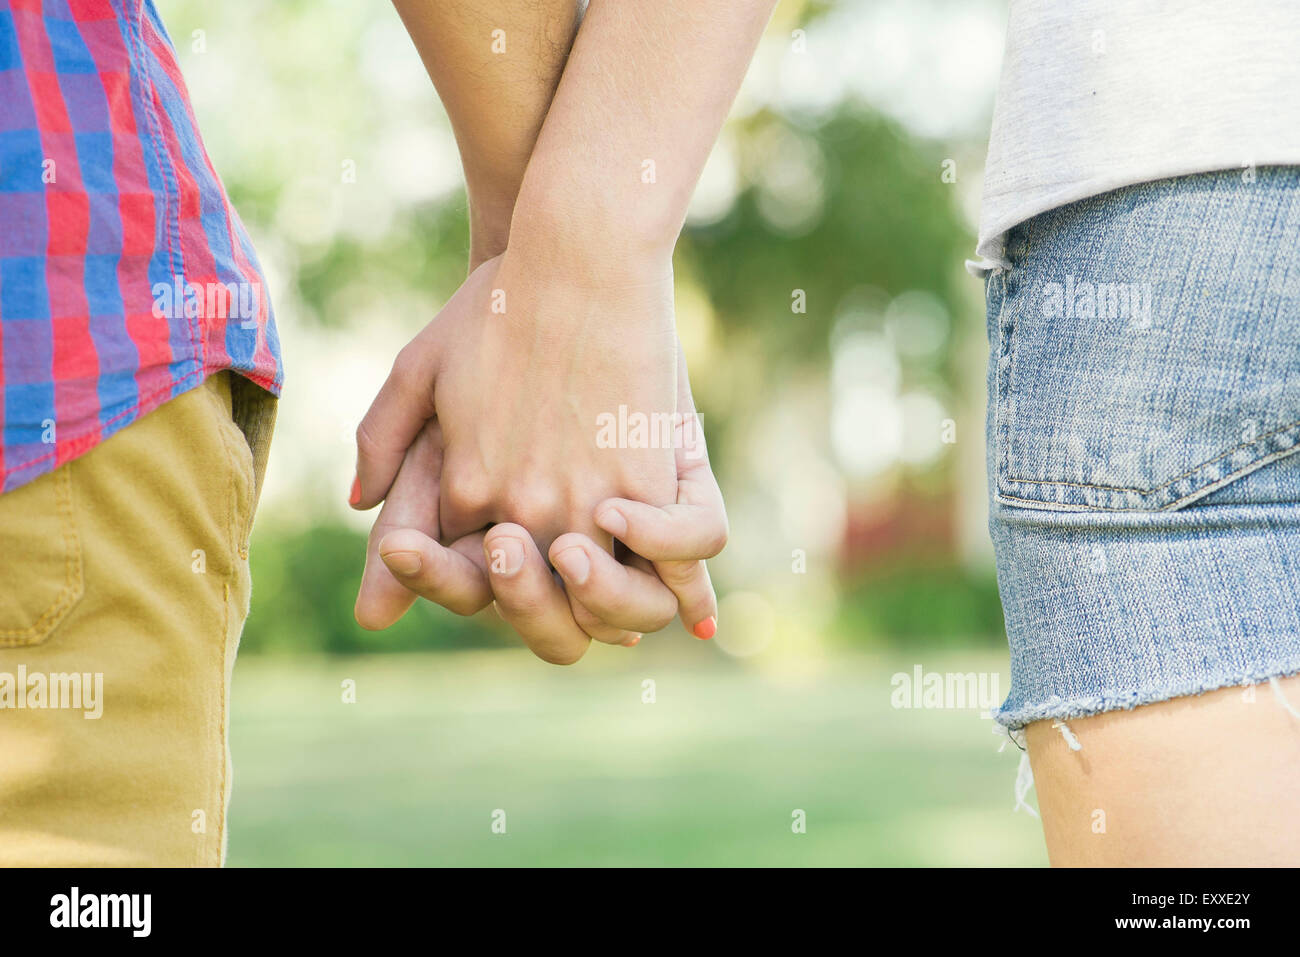 Couple holding hands outdoors, cropped rear view - Stock Image